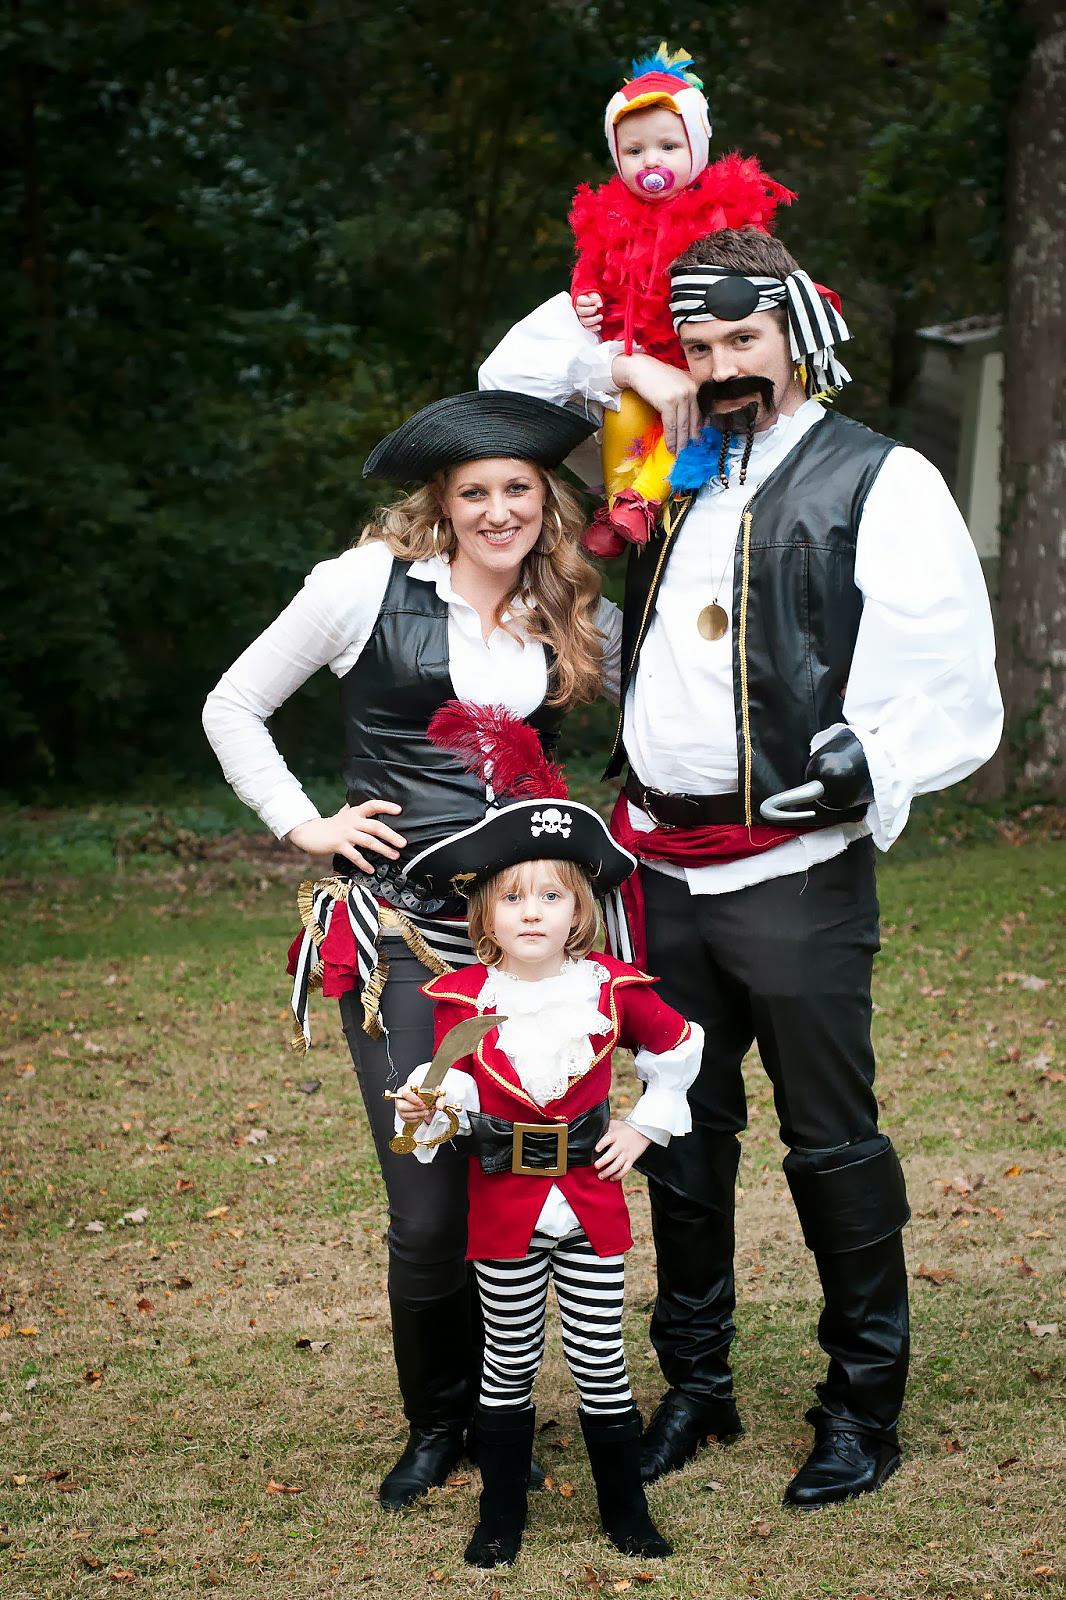 Best Halloween Costumes for Family and Kids, Pirate family theme costume with parrot baby costume, Best Homemade Costumes || Darling Darleen